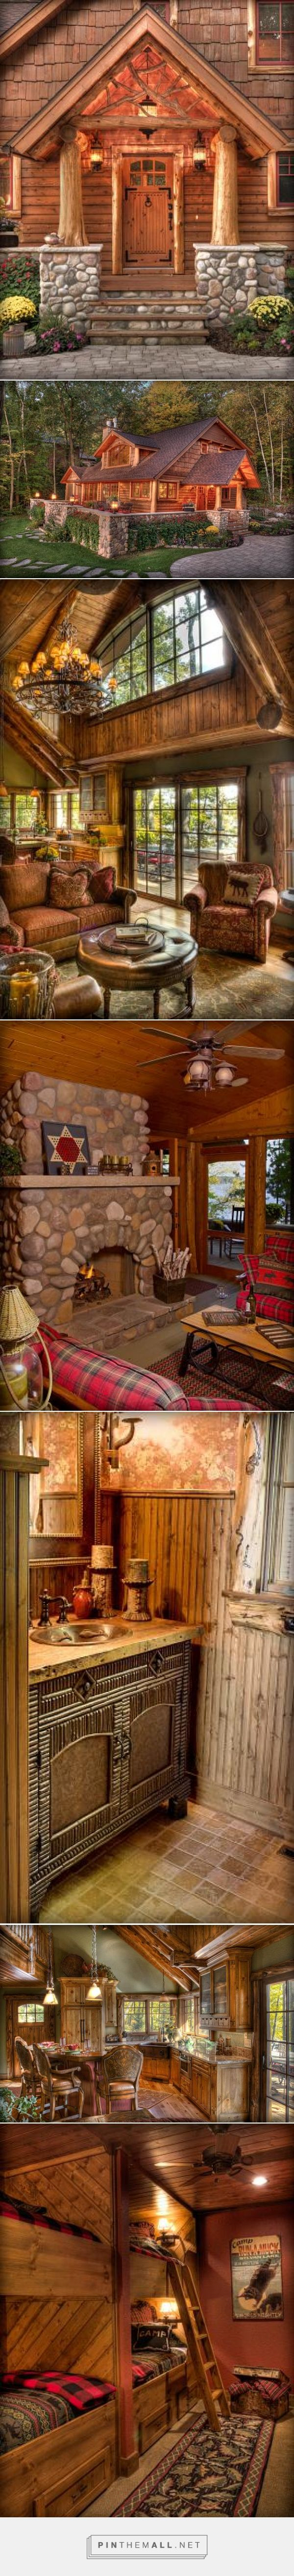 Best  Log Home Interiors Ideas On Pinterest - Homes interior design